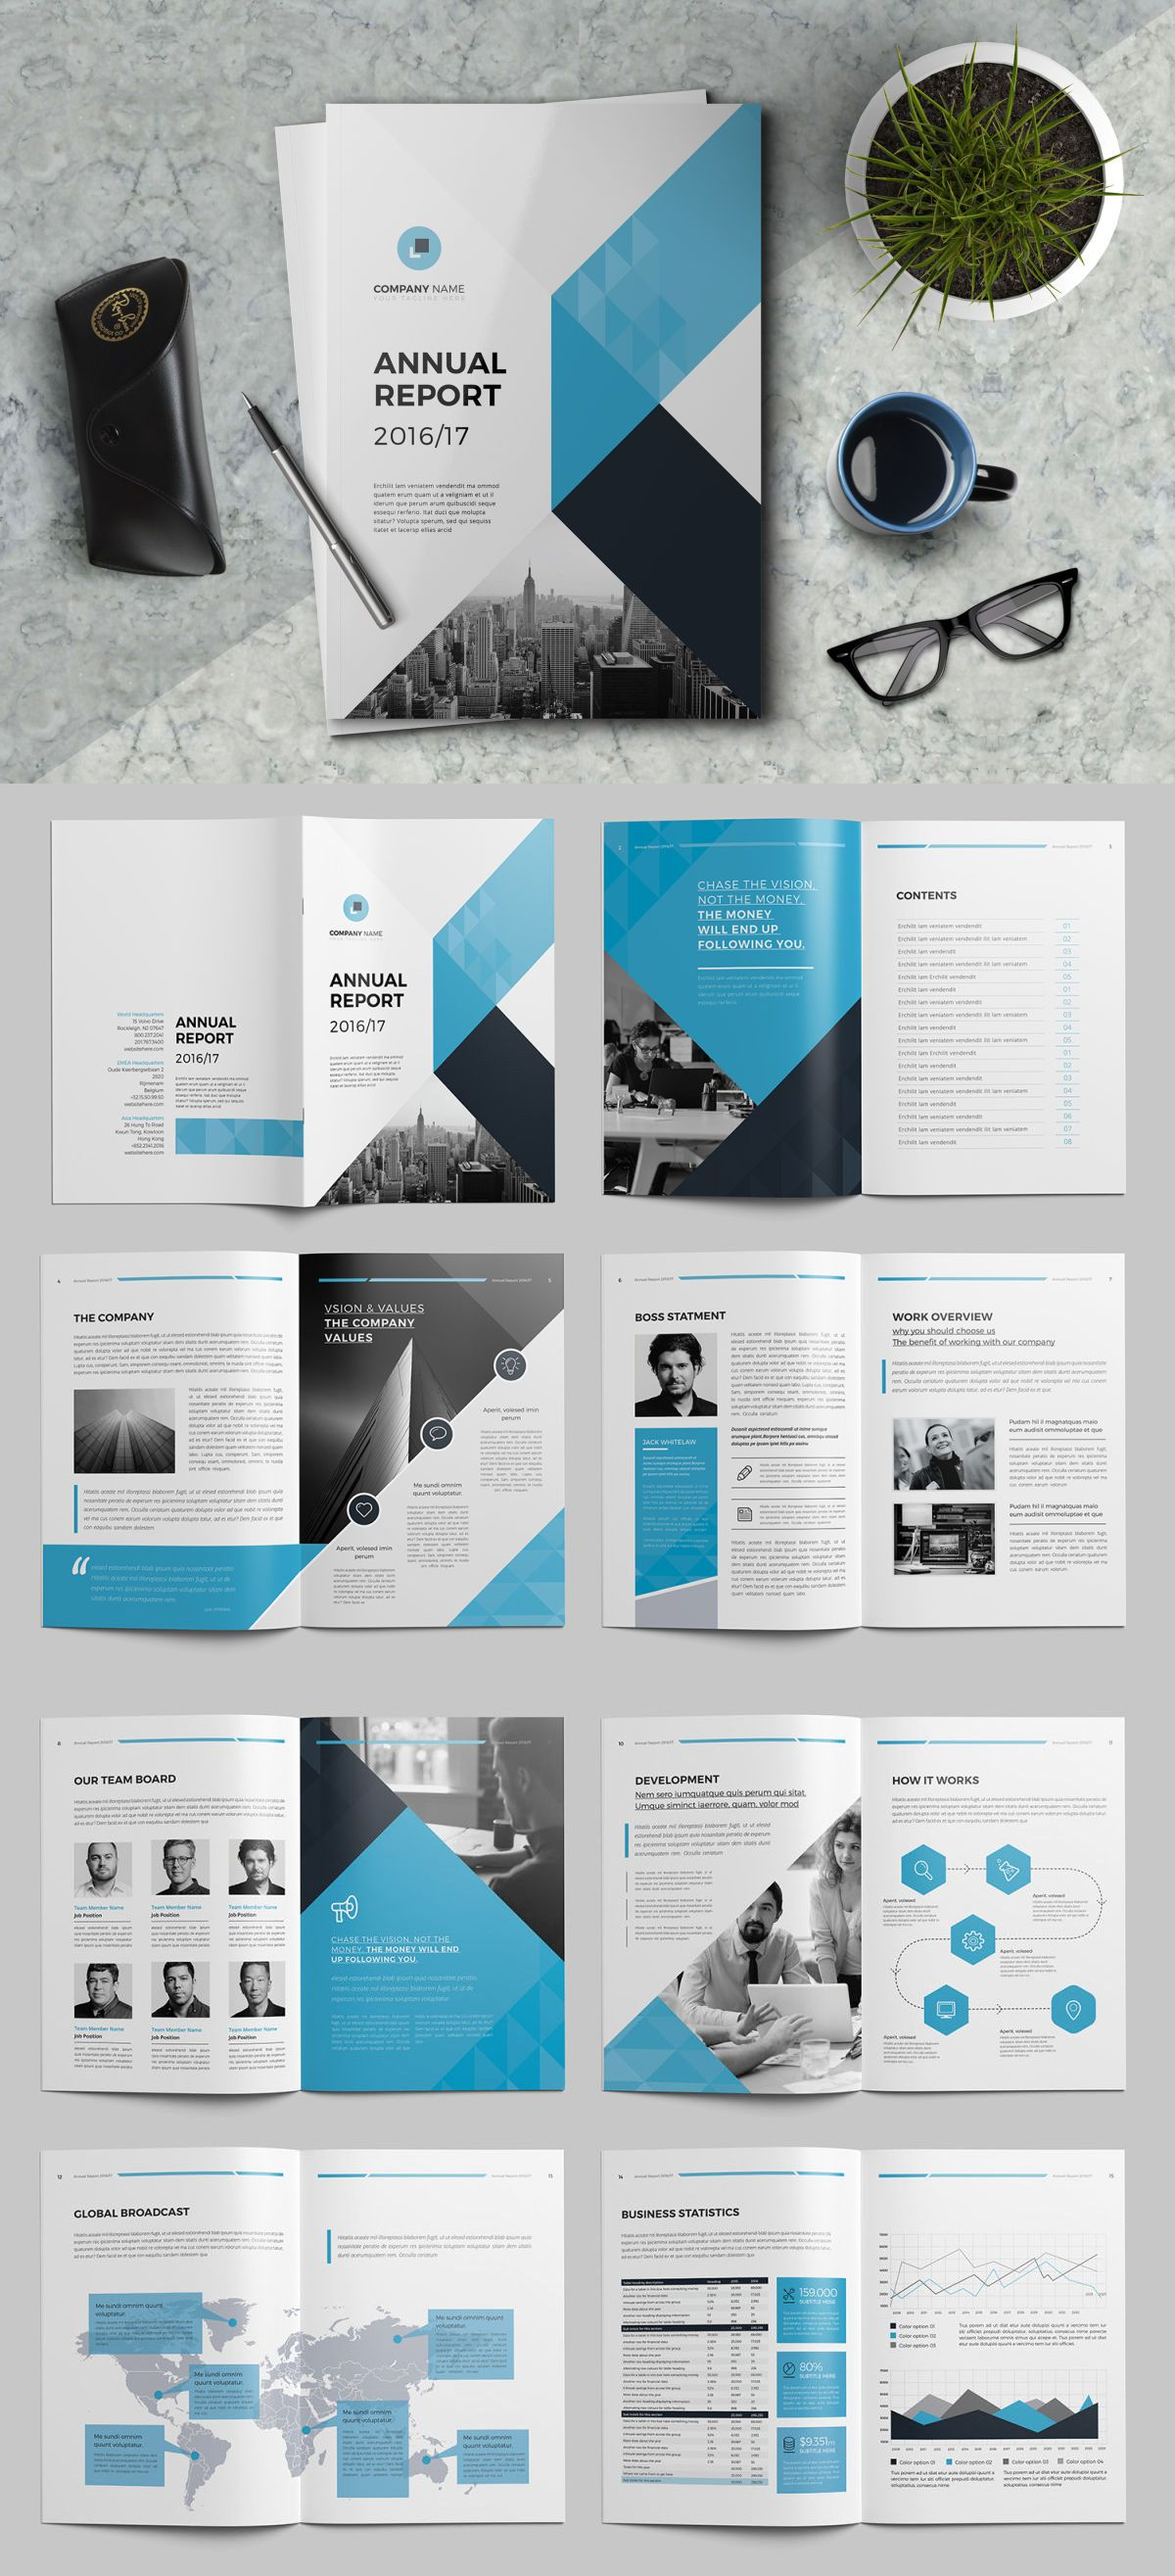 Annual Report 16 Pages Template InDesign INDD | Annual Report ...